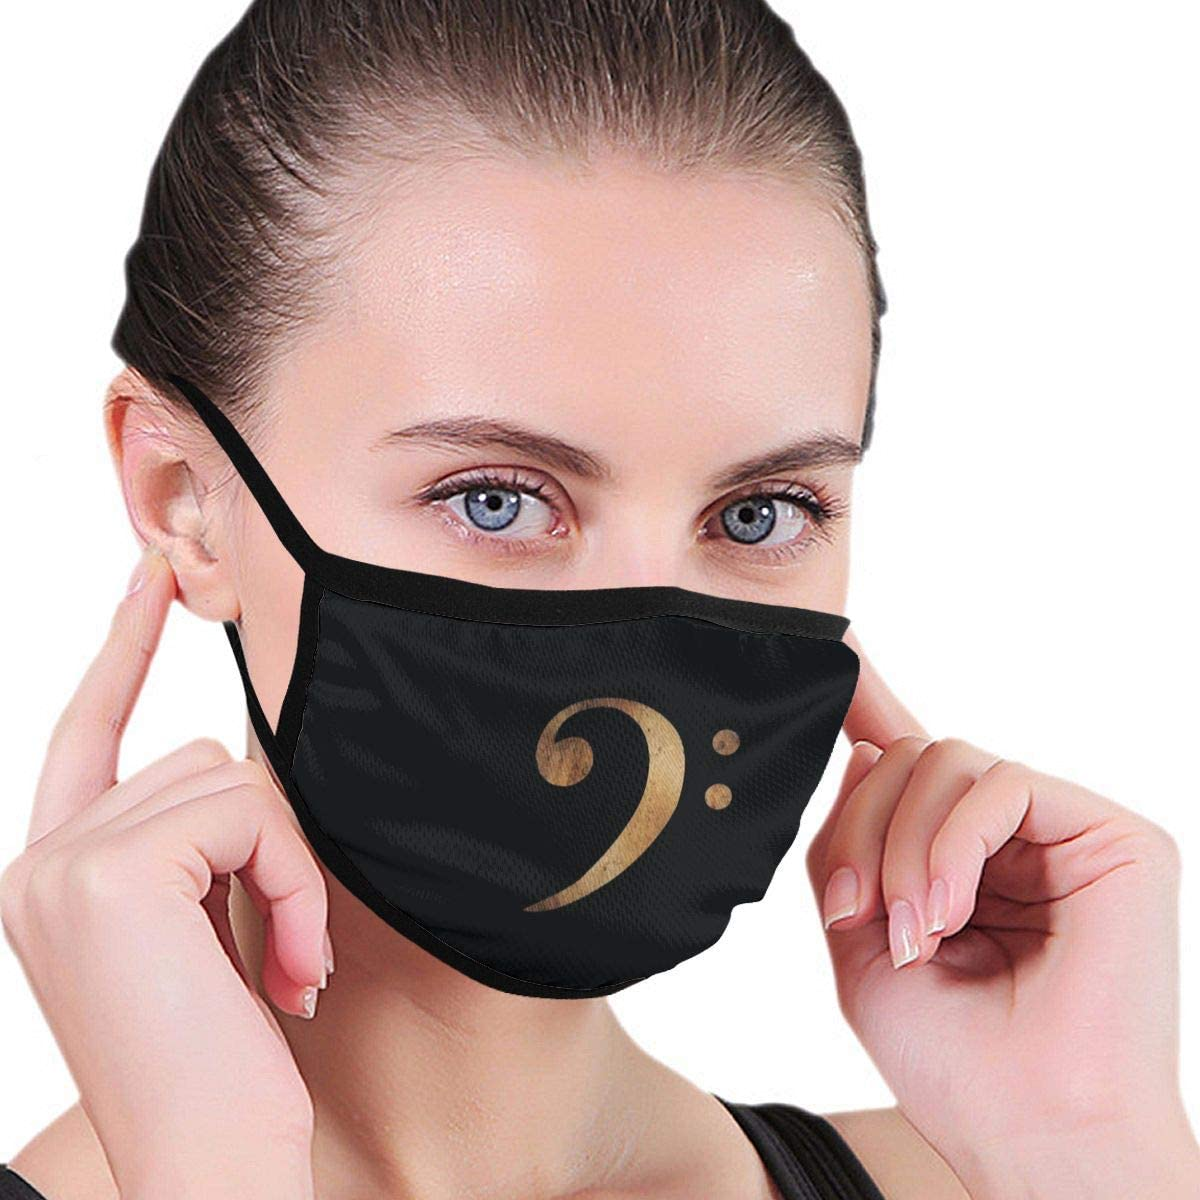 Face Cover Bass Max 78% OFF Clef Music San Antonio Mall Cove Mouth Mouth-Muffle Nose Washable